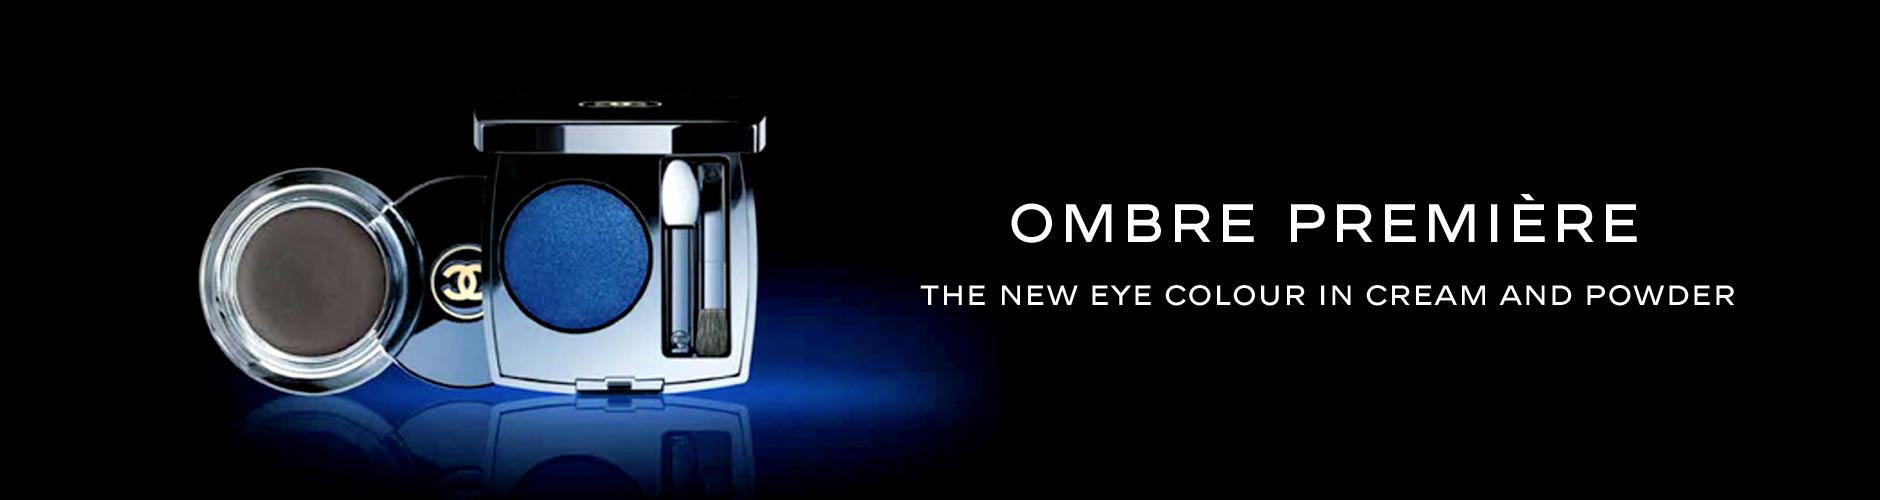 Ombre Premiere - The new eye colour in cream and powder